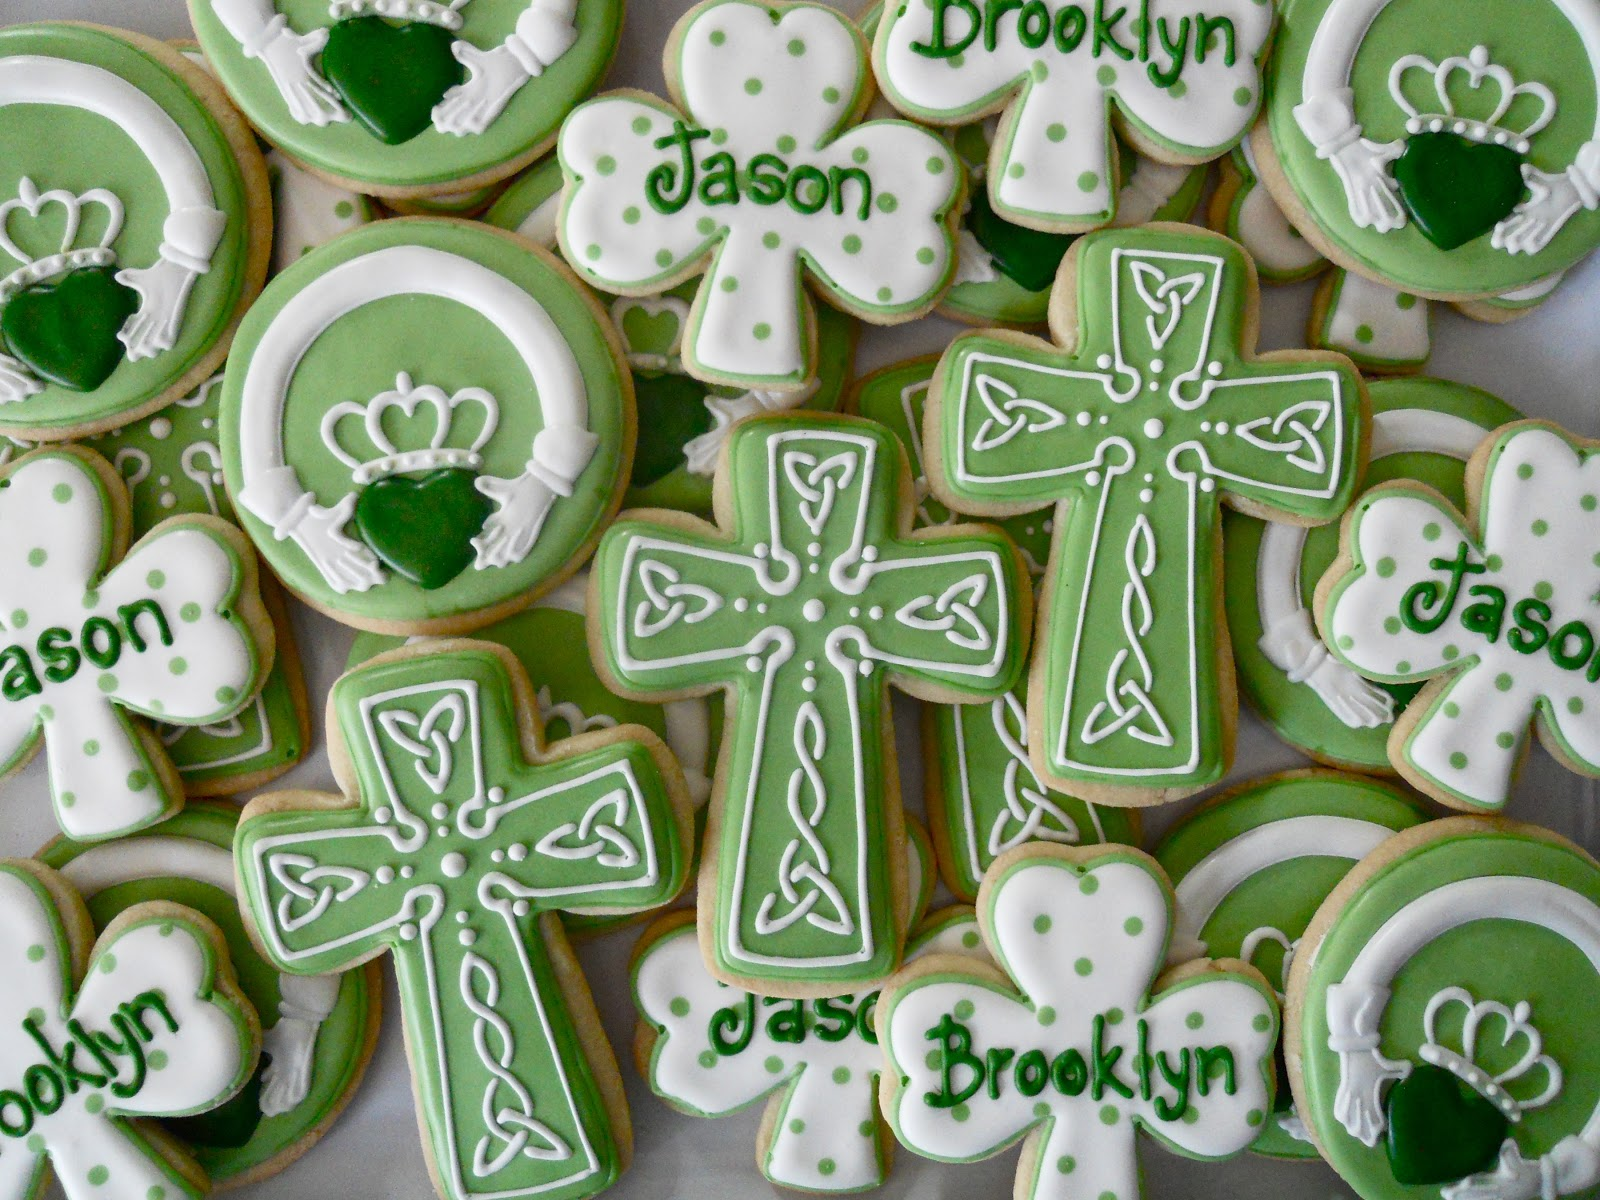 Saint Patrick's Day Image